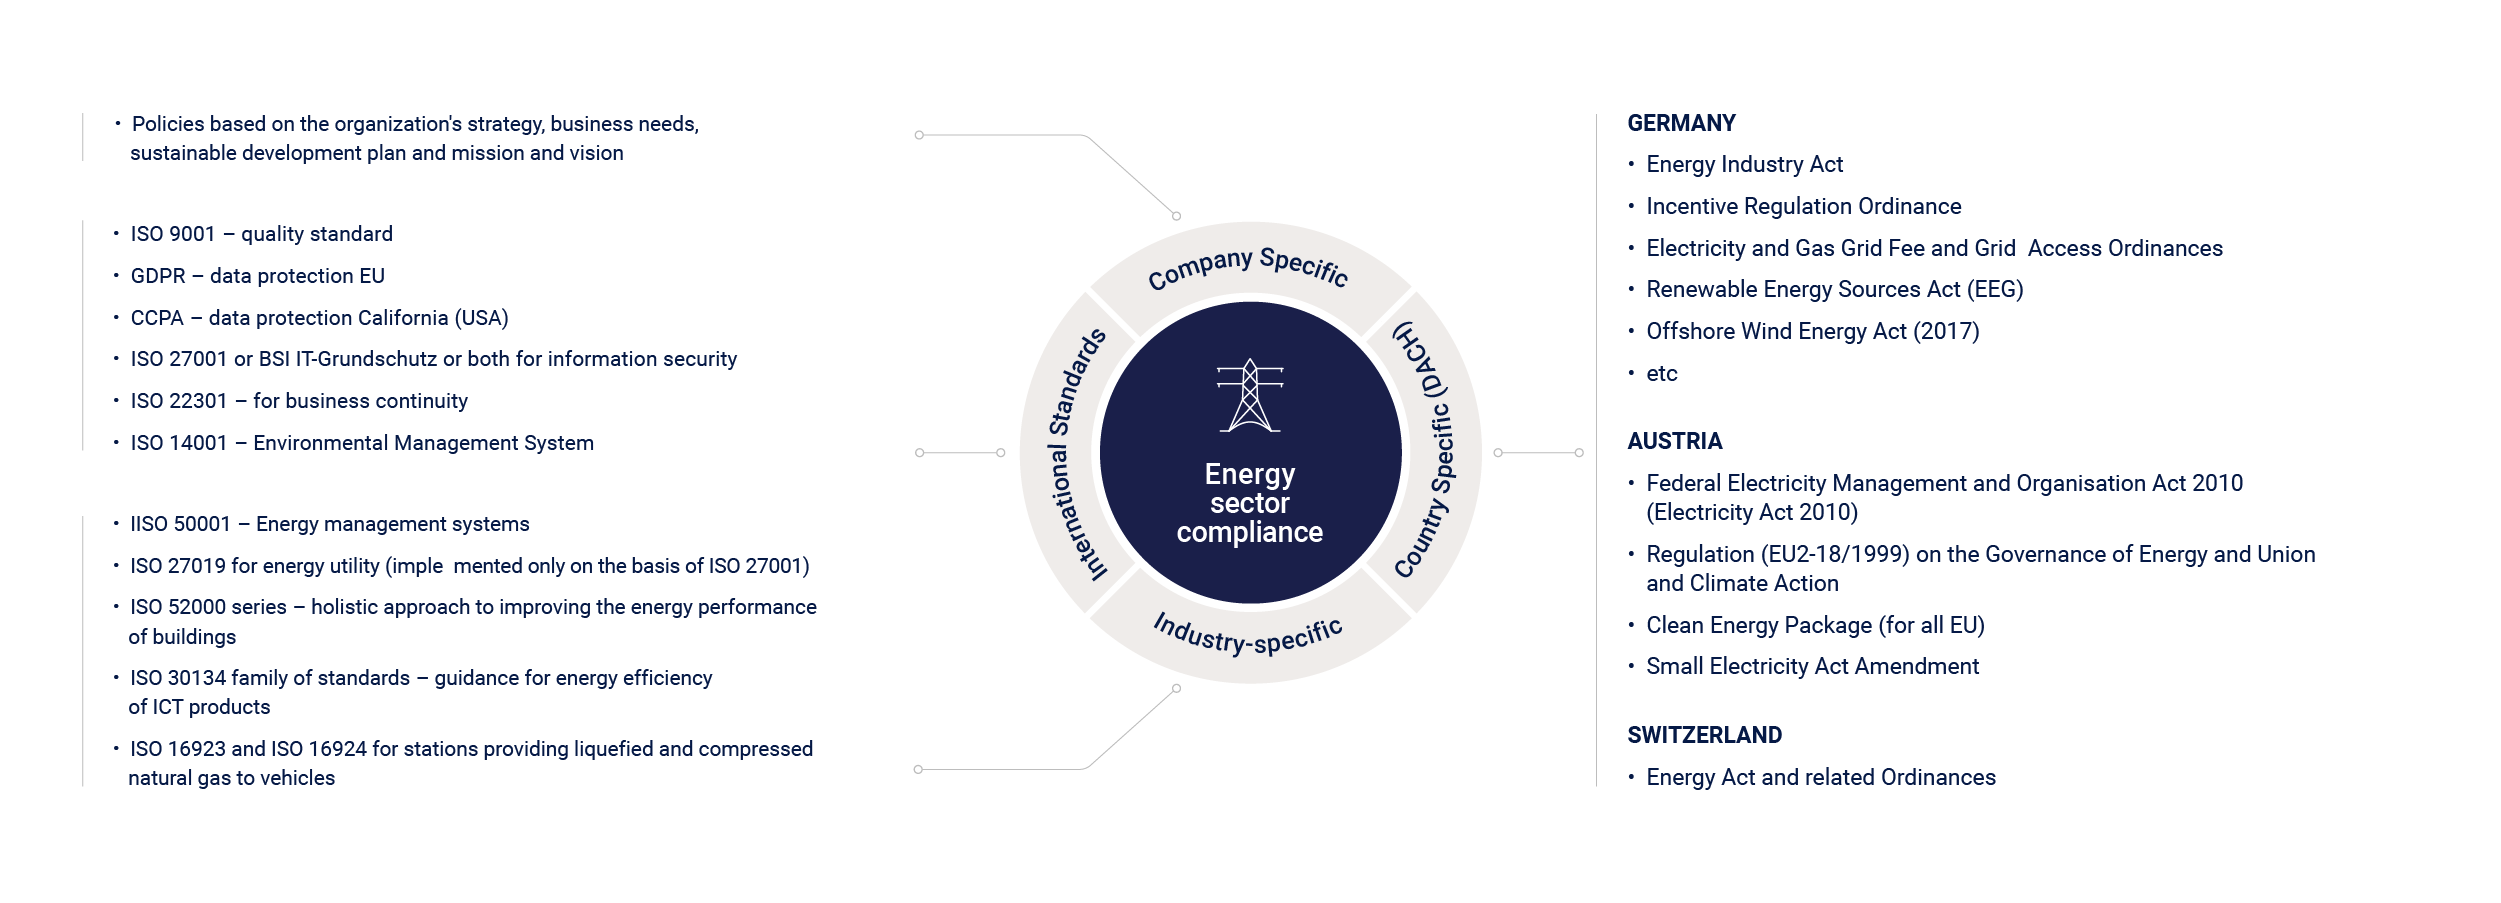 Compliance energy sector